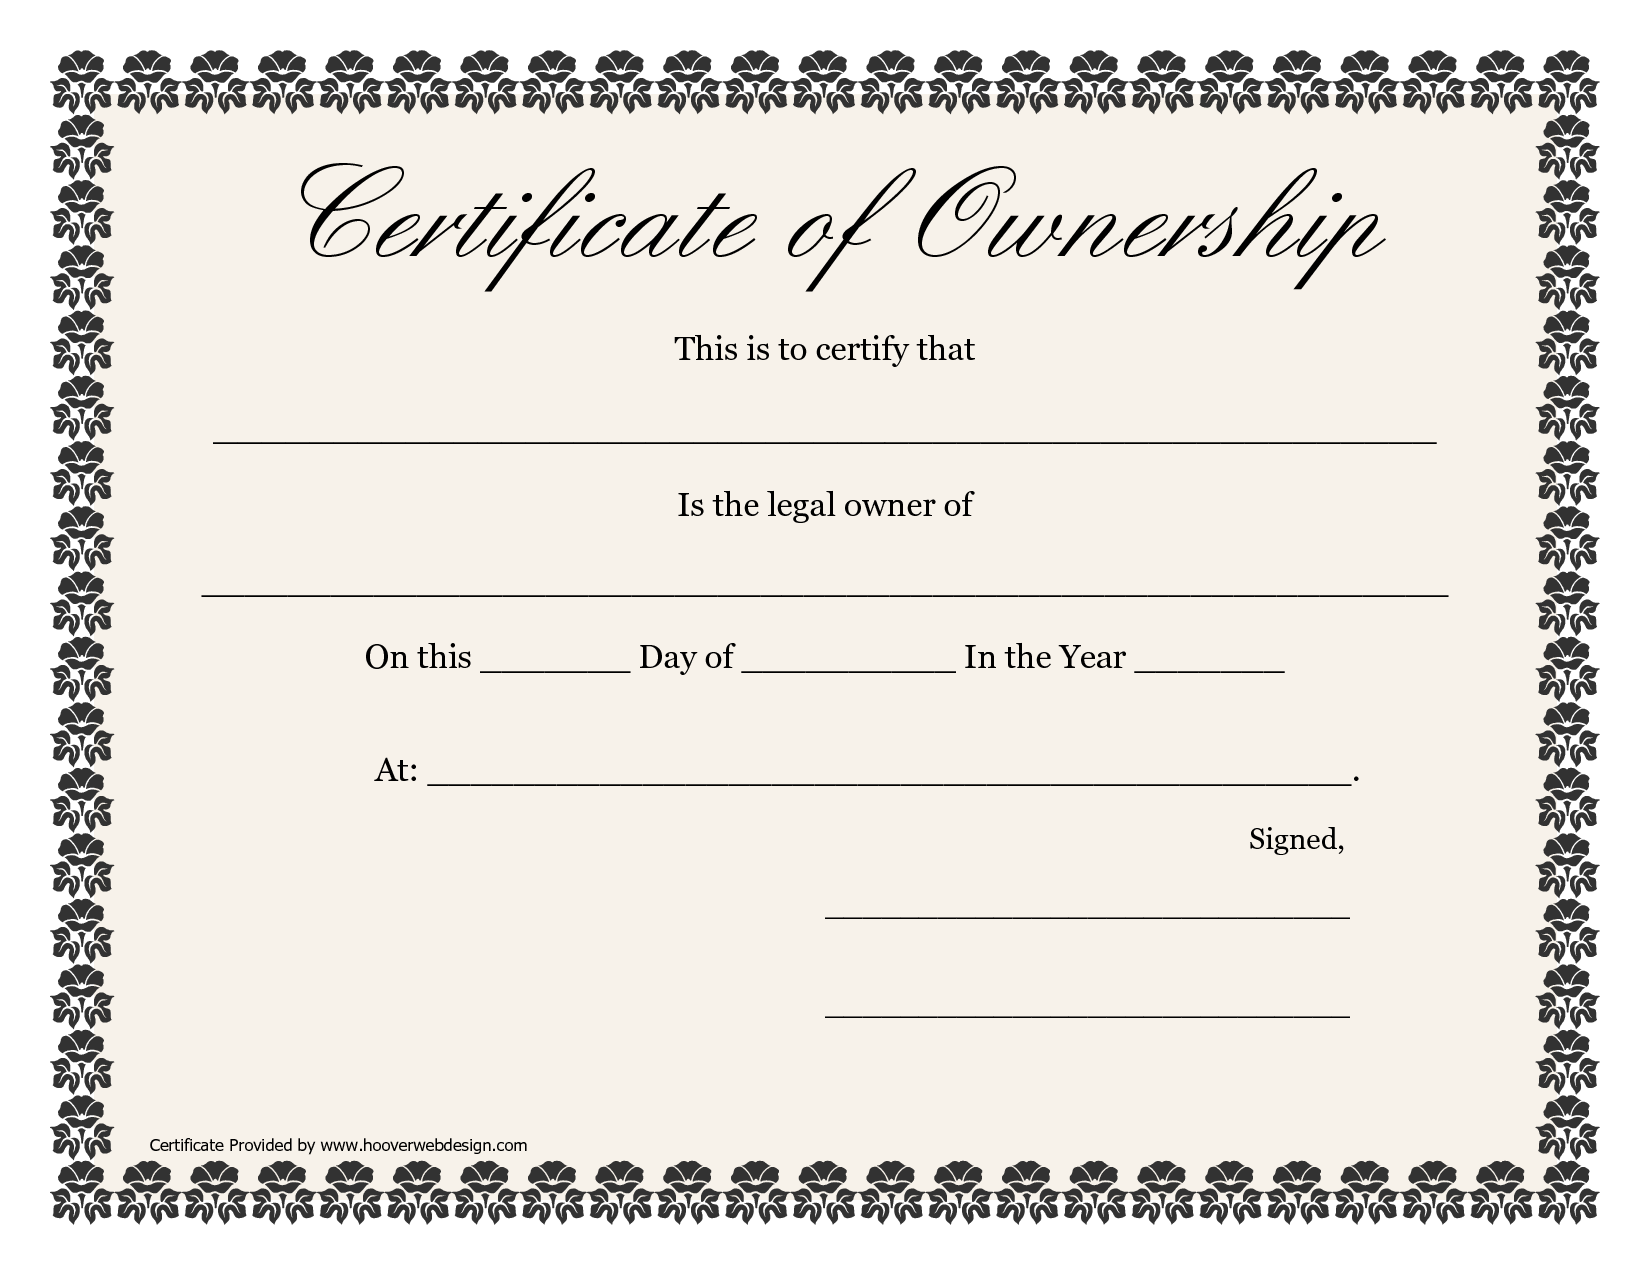 Certificate Of Ownership Templates Certificate Of